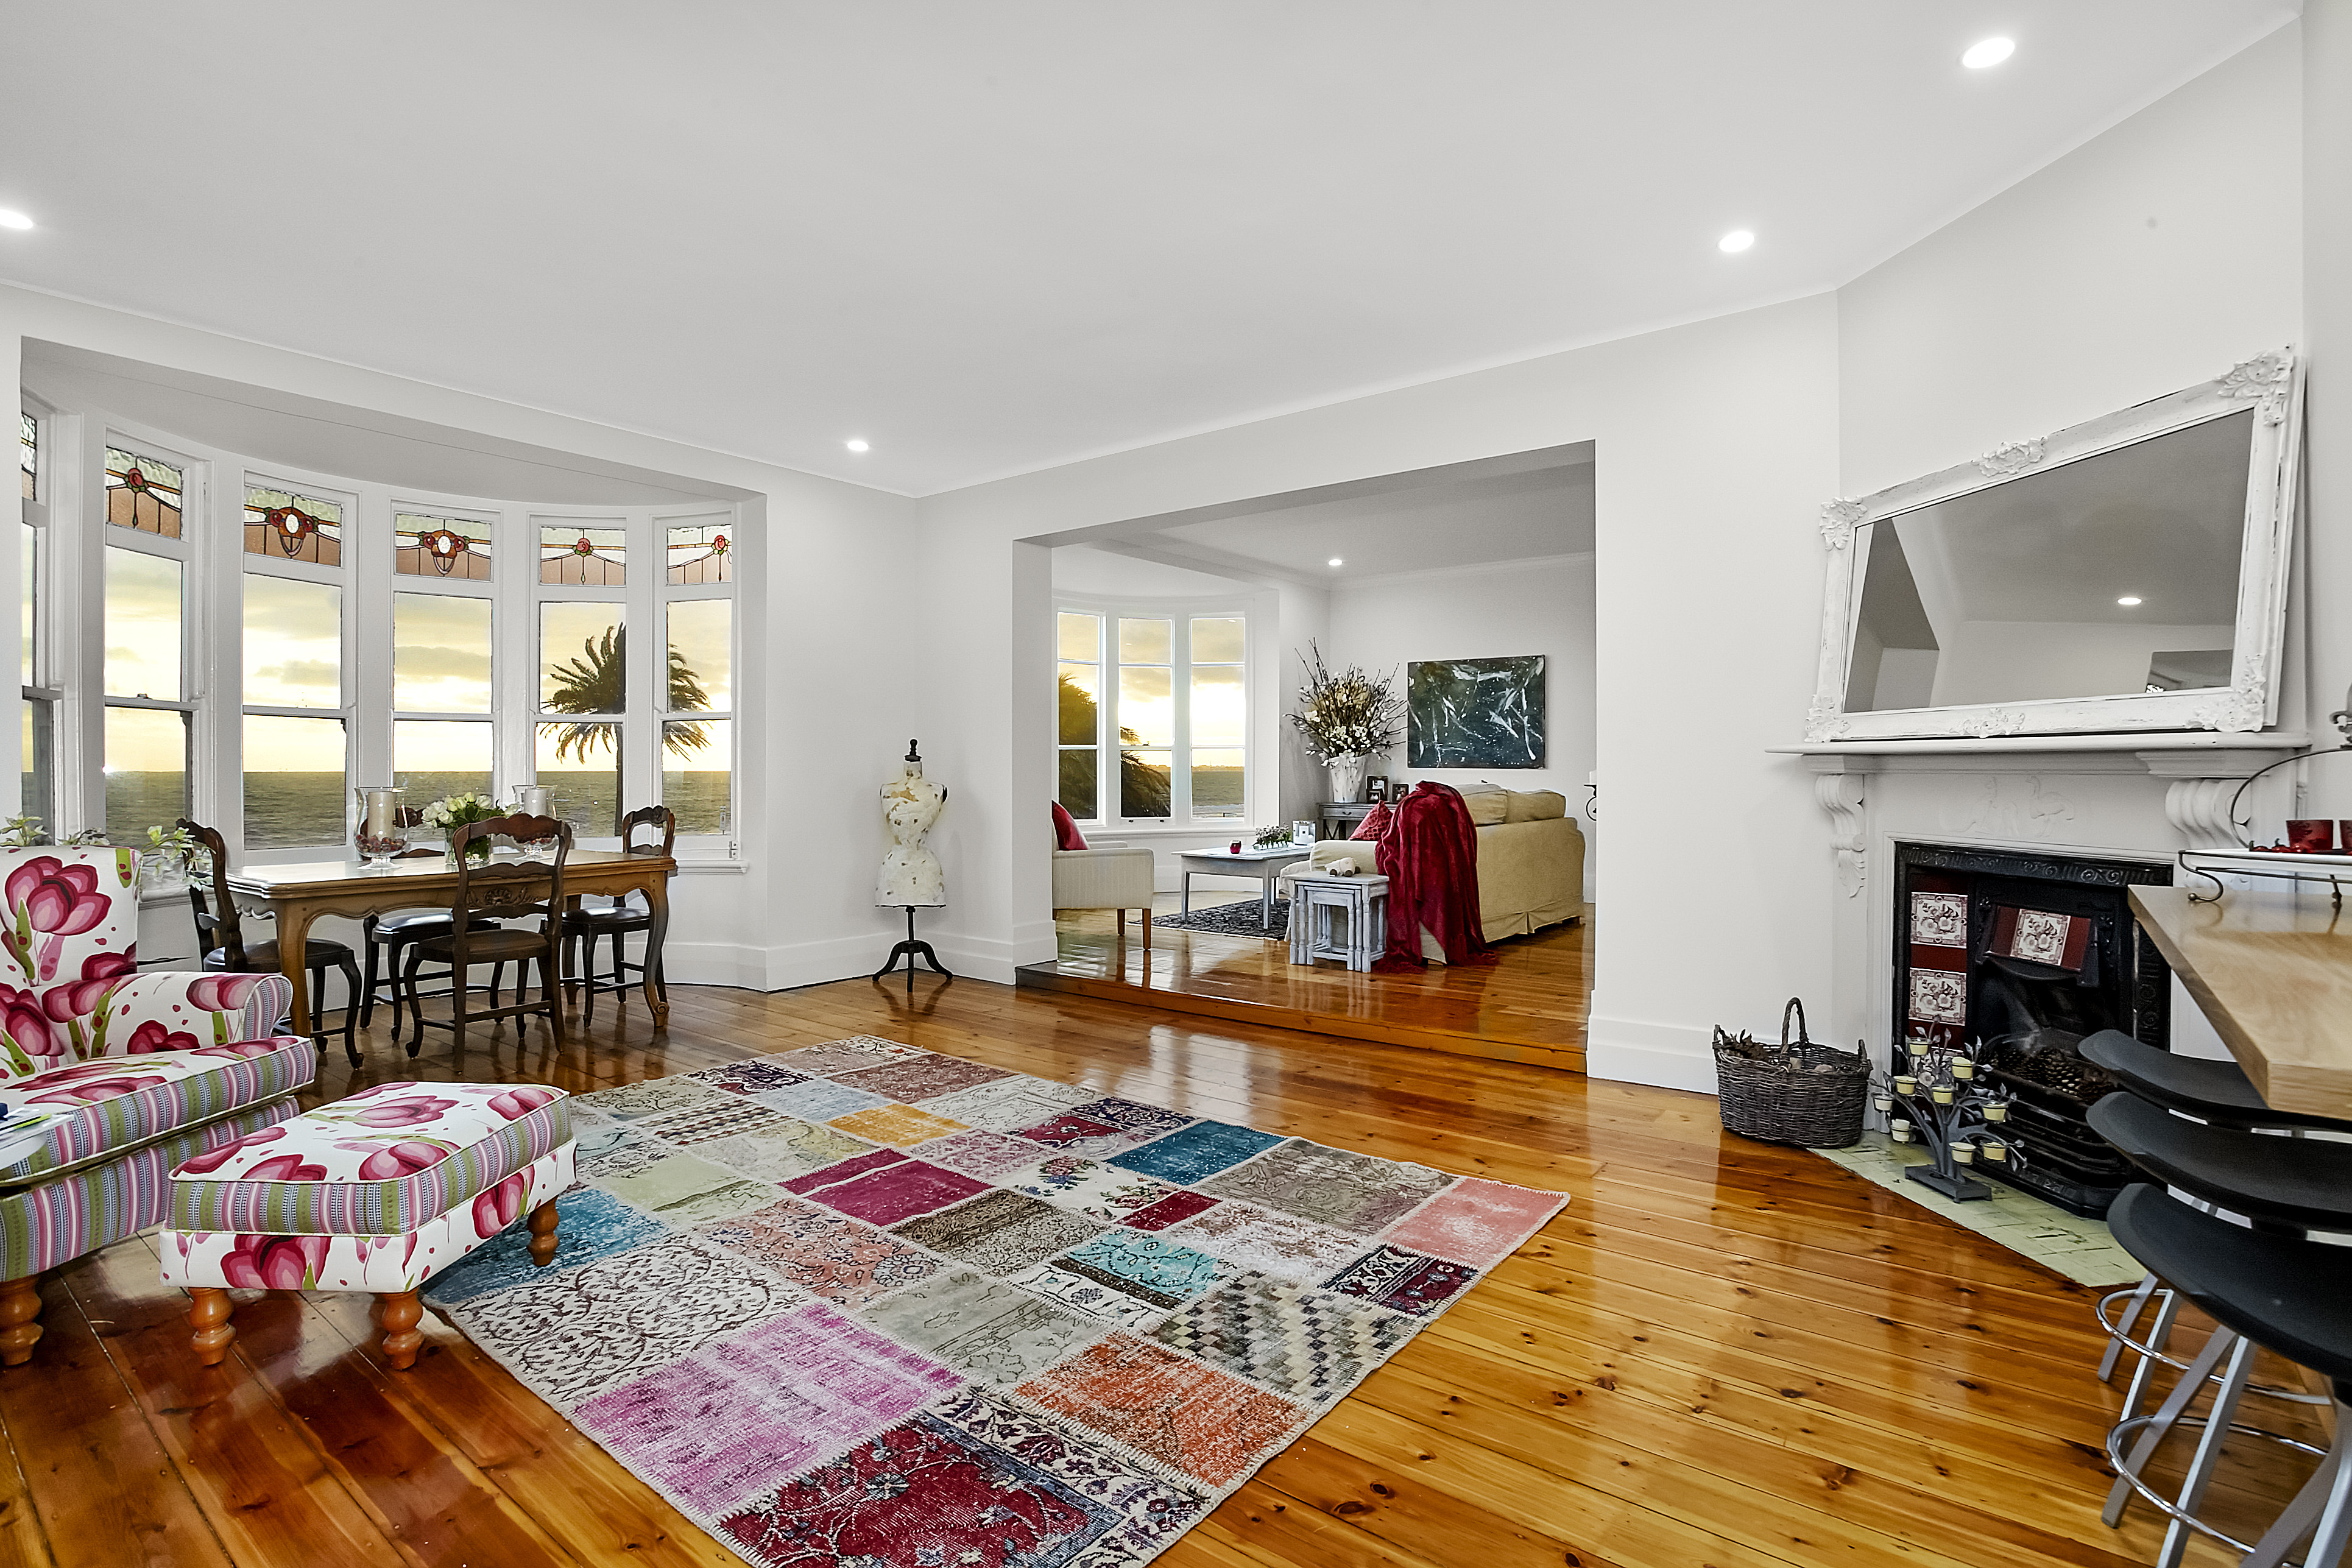 11-243-beaconsfield-parade-middle-park-student-accommodation-Melbourne--Living-Area3-Unilodgers